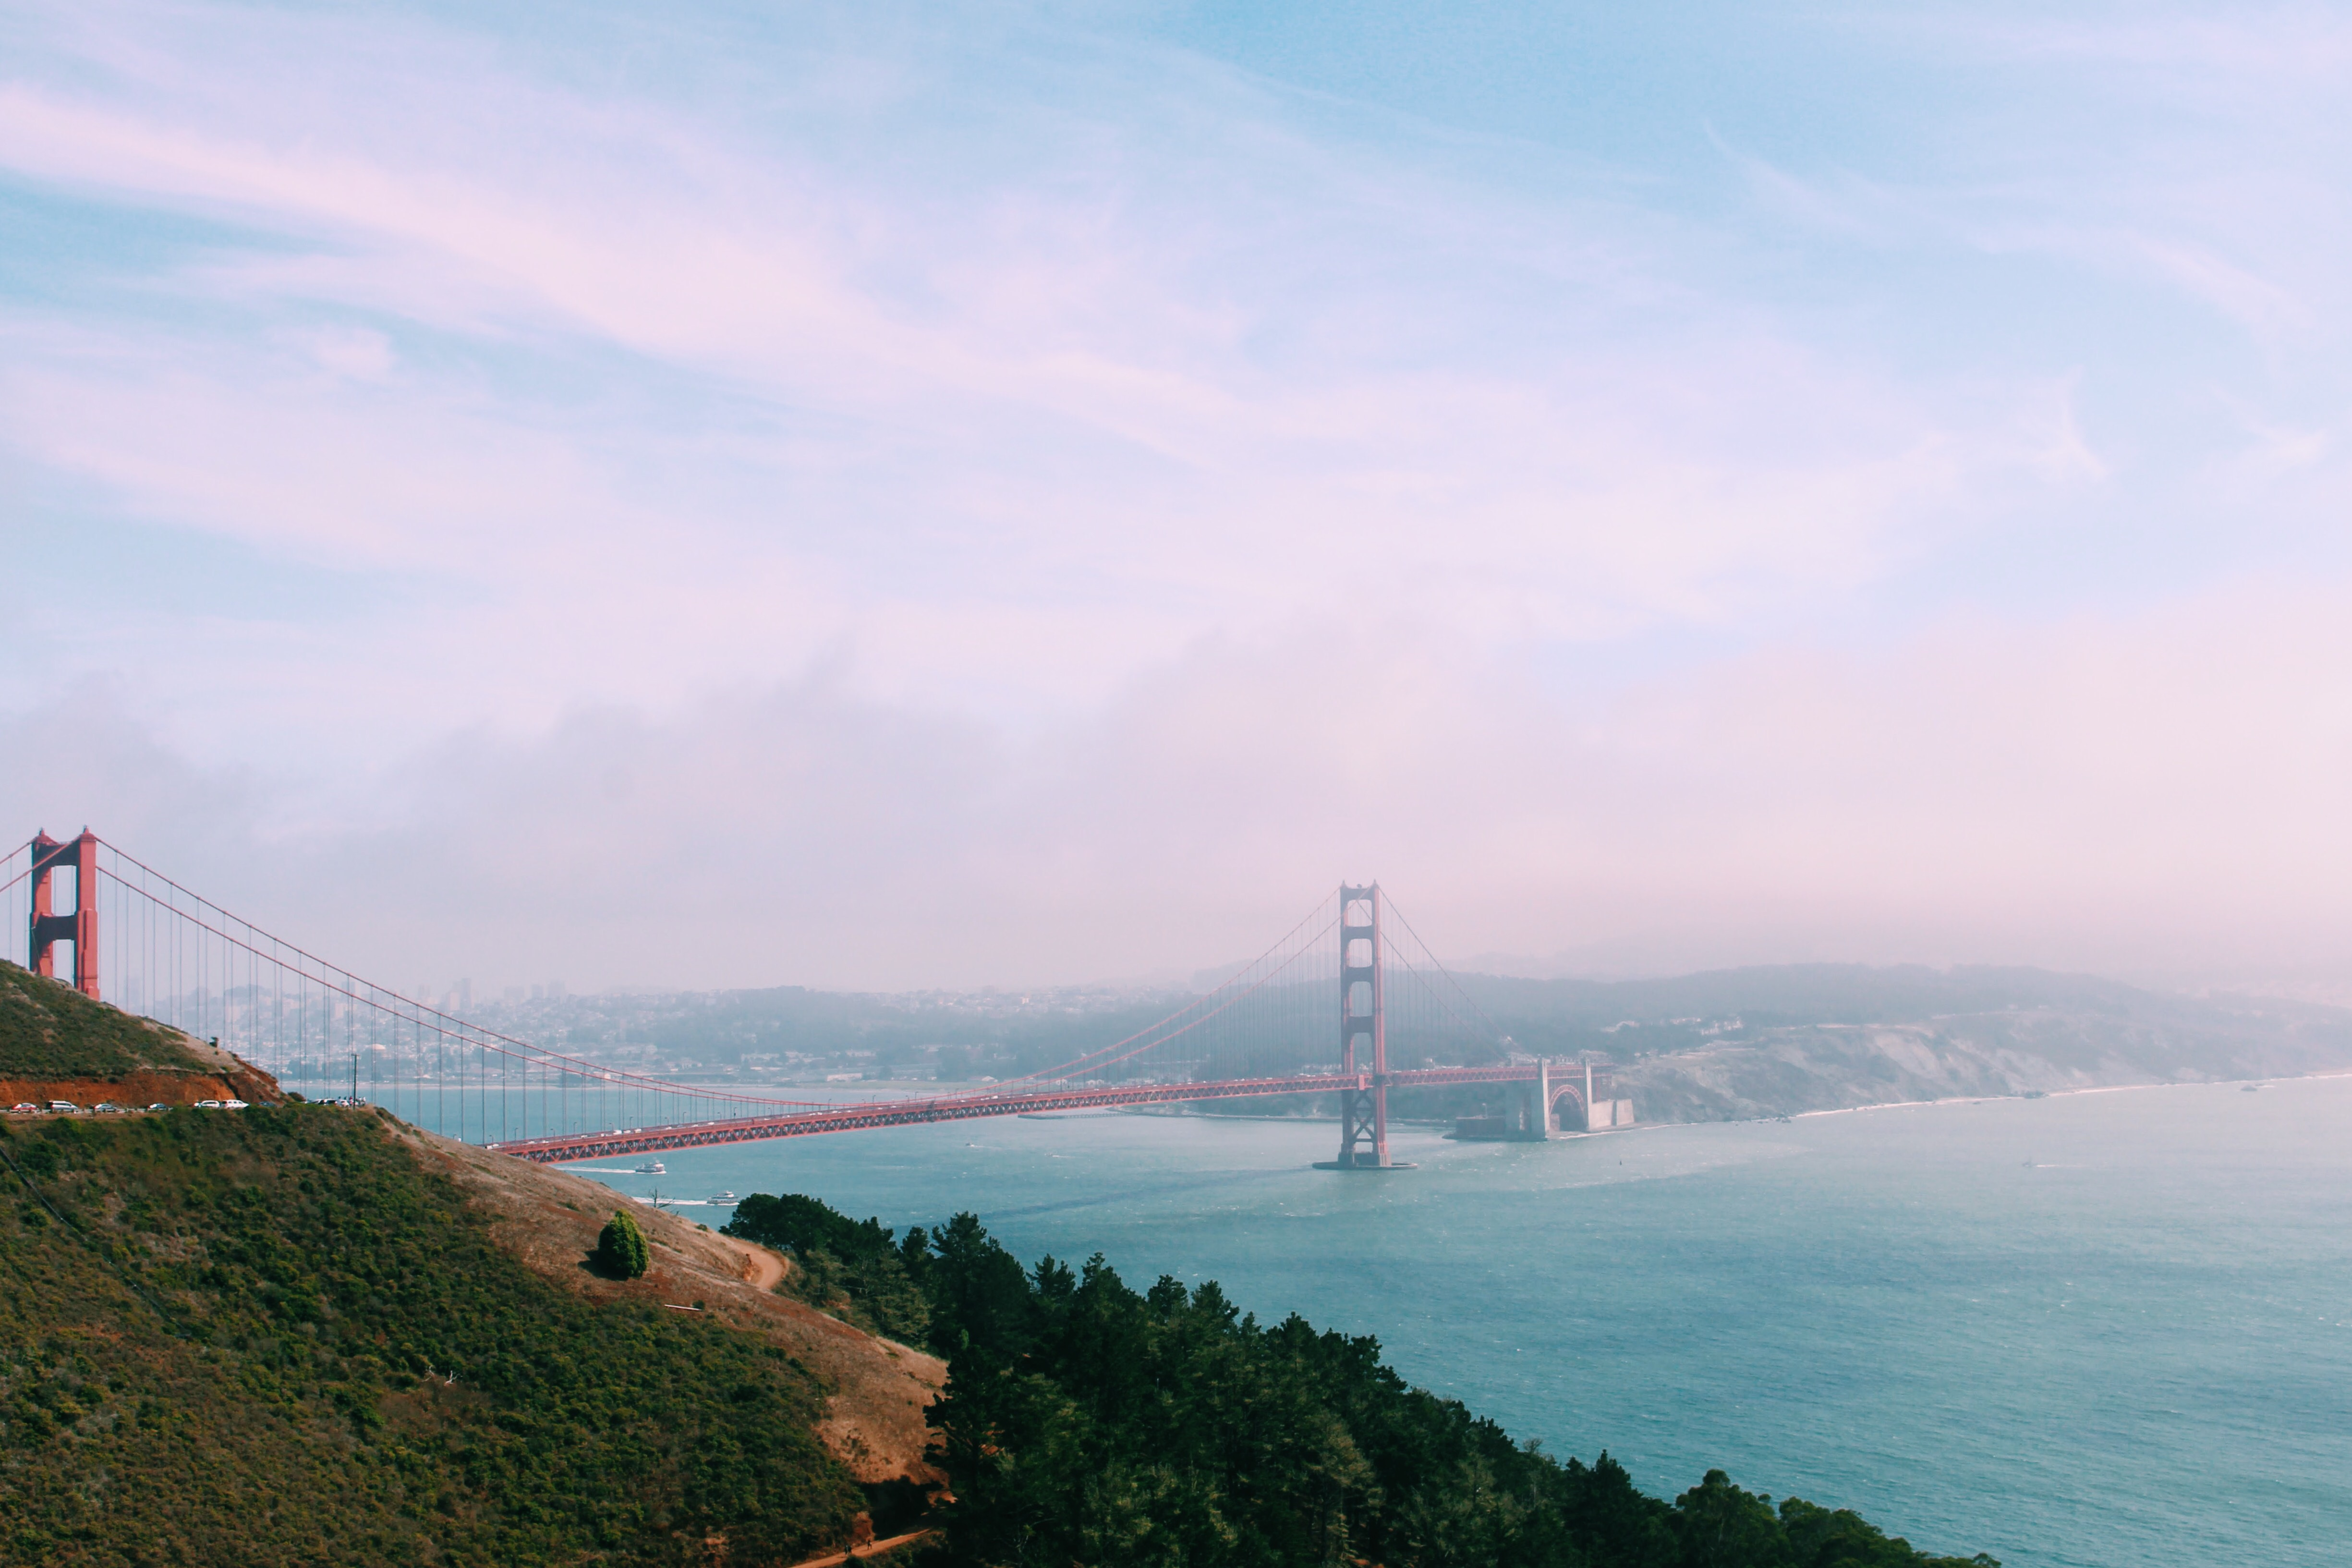 5 Day San Francisco and Pacific Coast Highway Itinerary